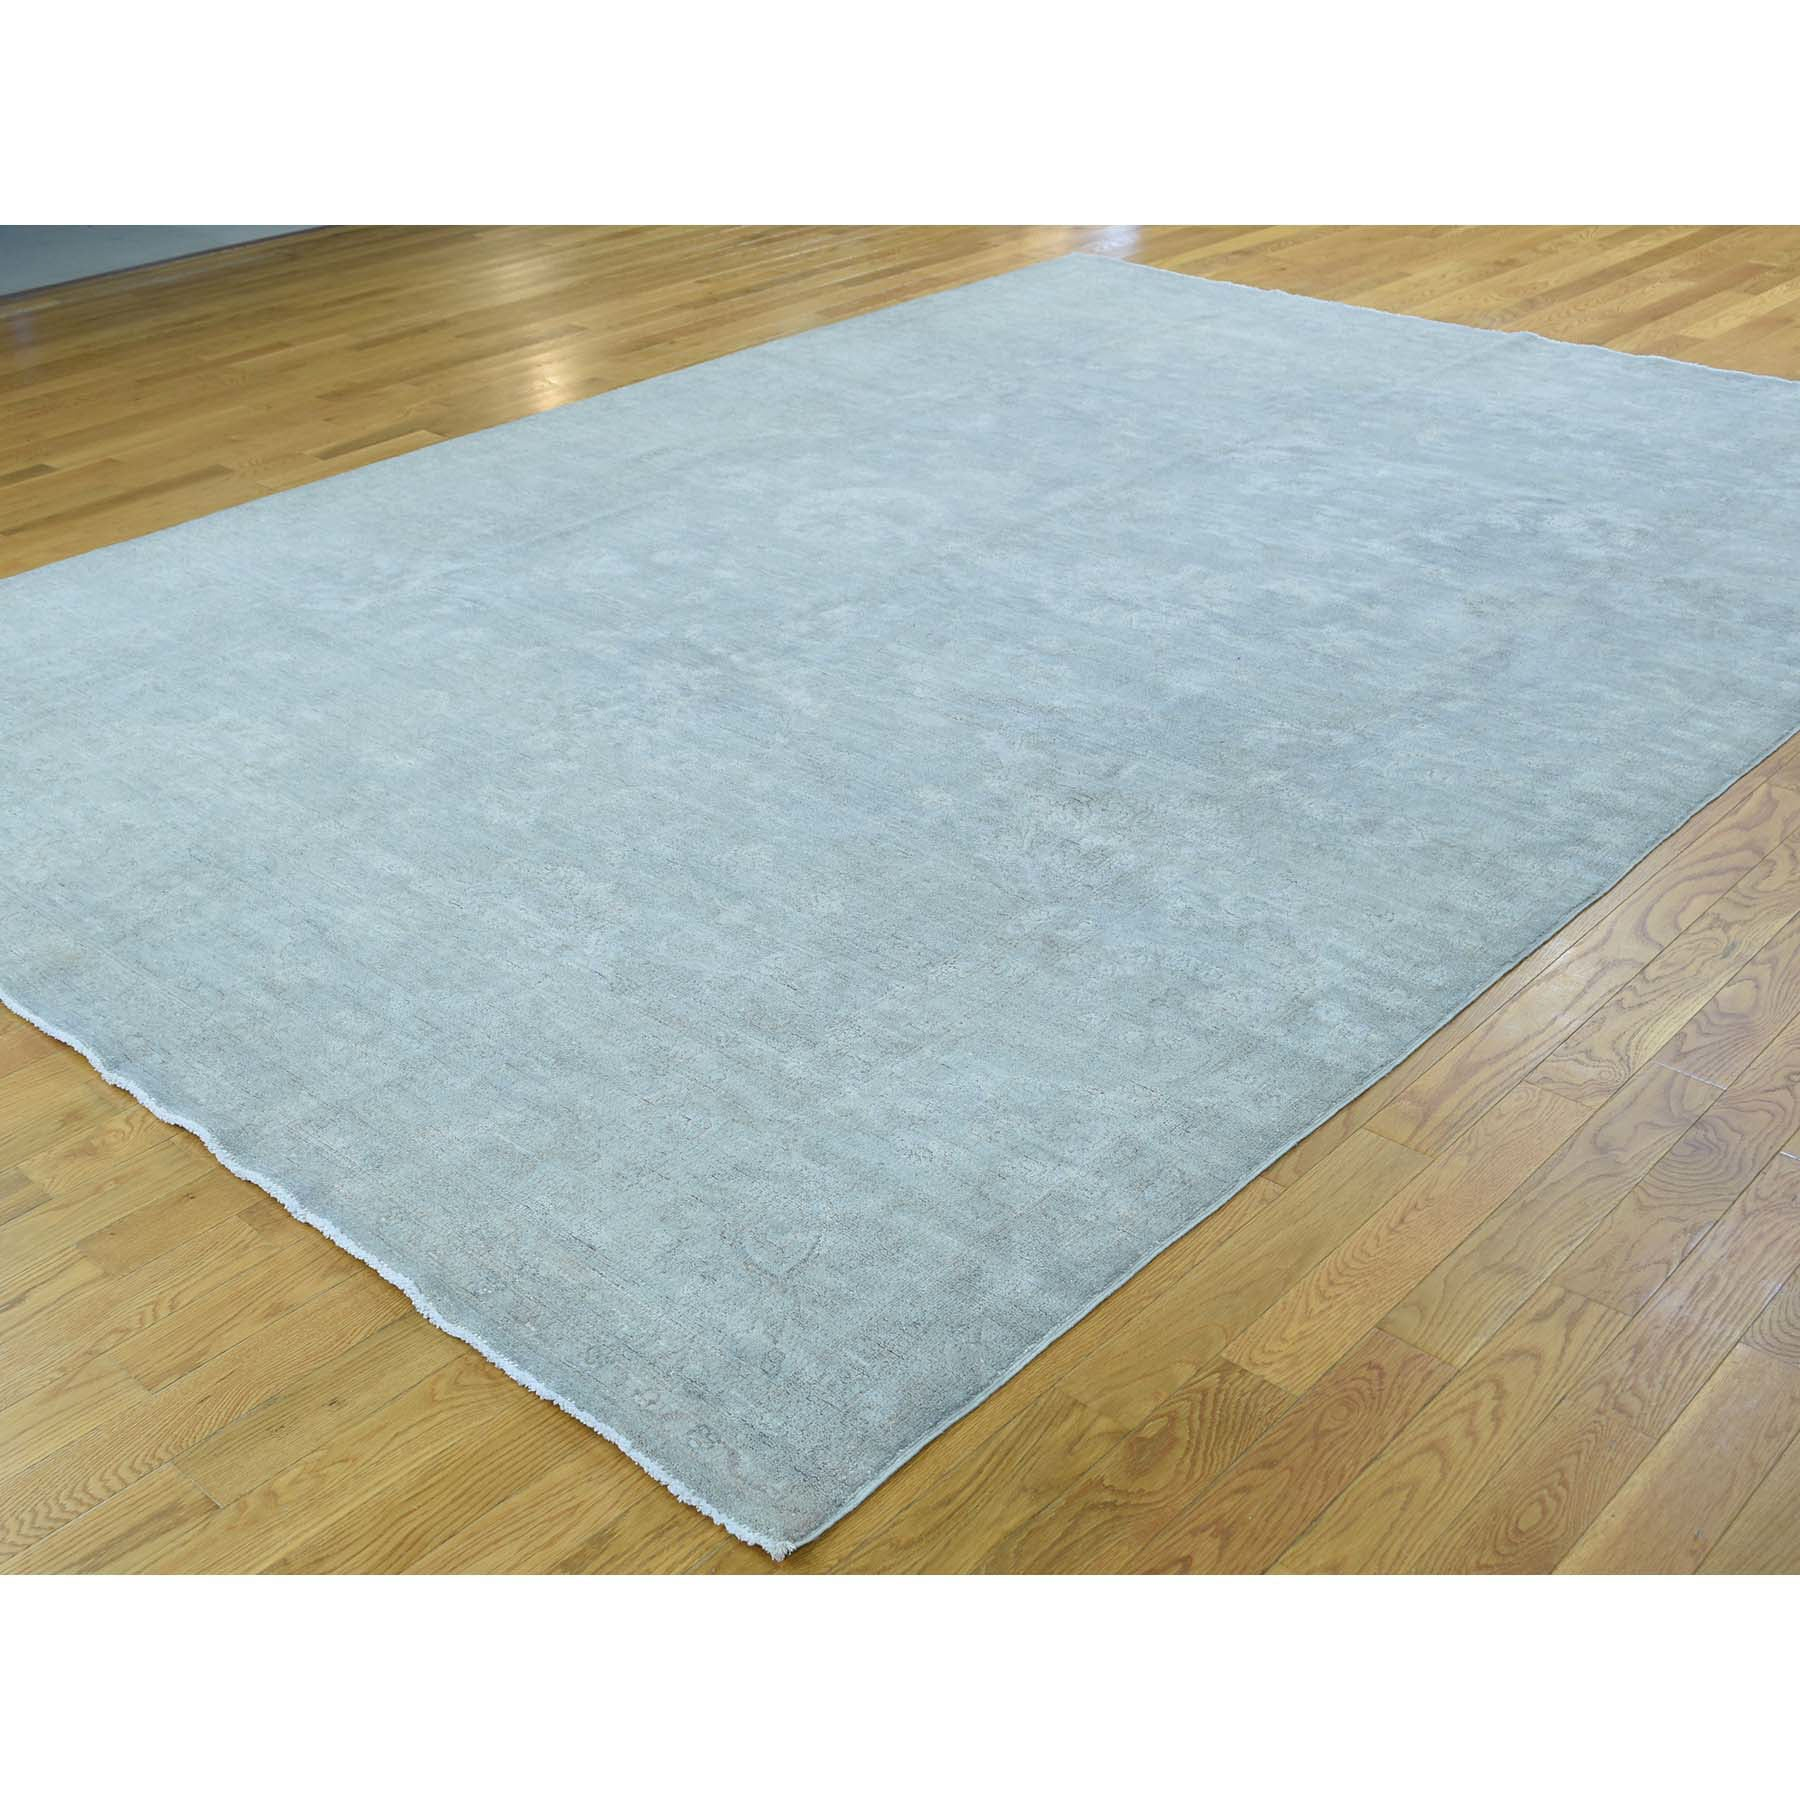 "Handmade White Wash Vintage & Silver Wash Rectangle Rug > Design# SH36724 > Size: 8'-6"" x 11'-7"" [ONLINE ONLY]"